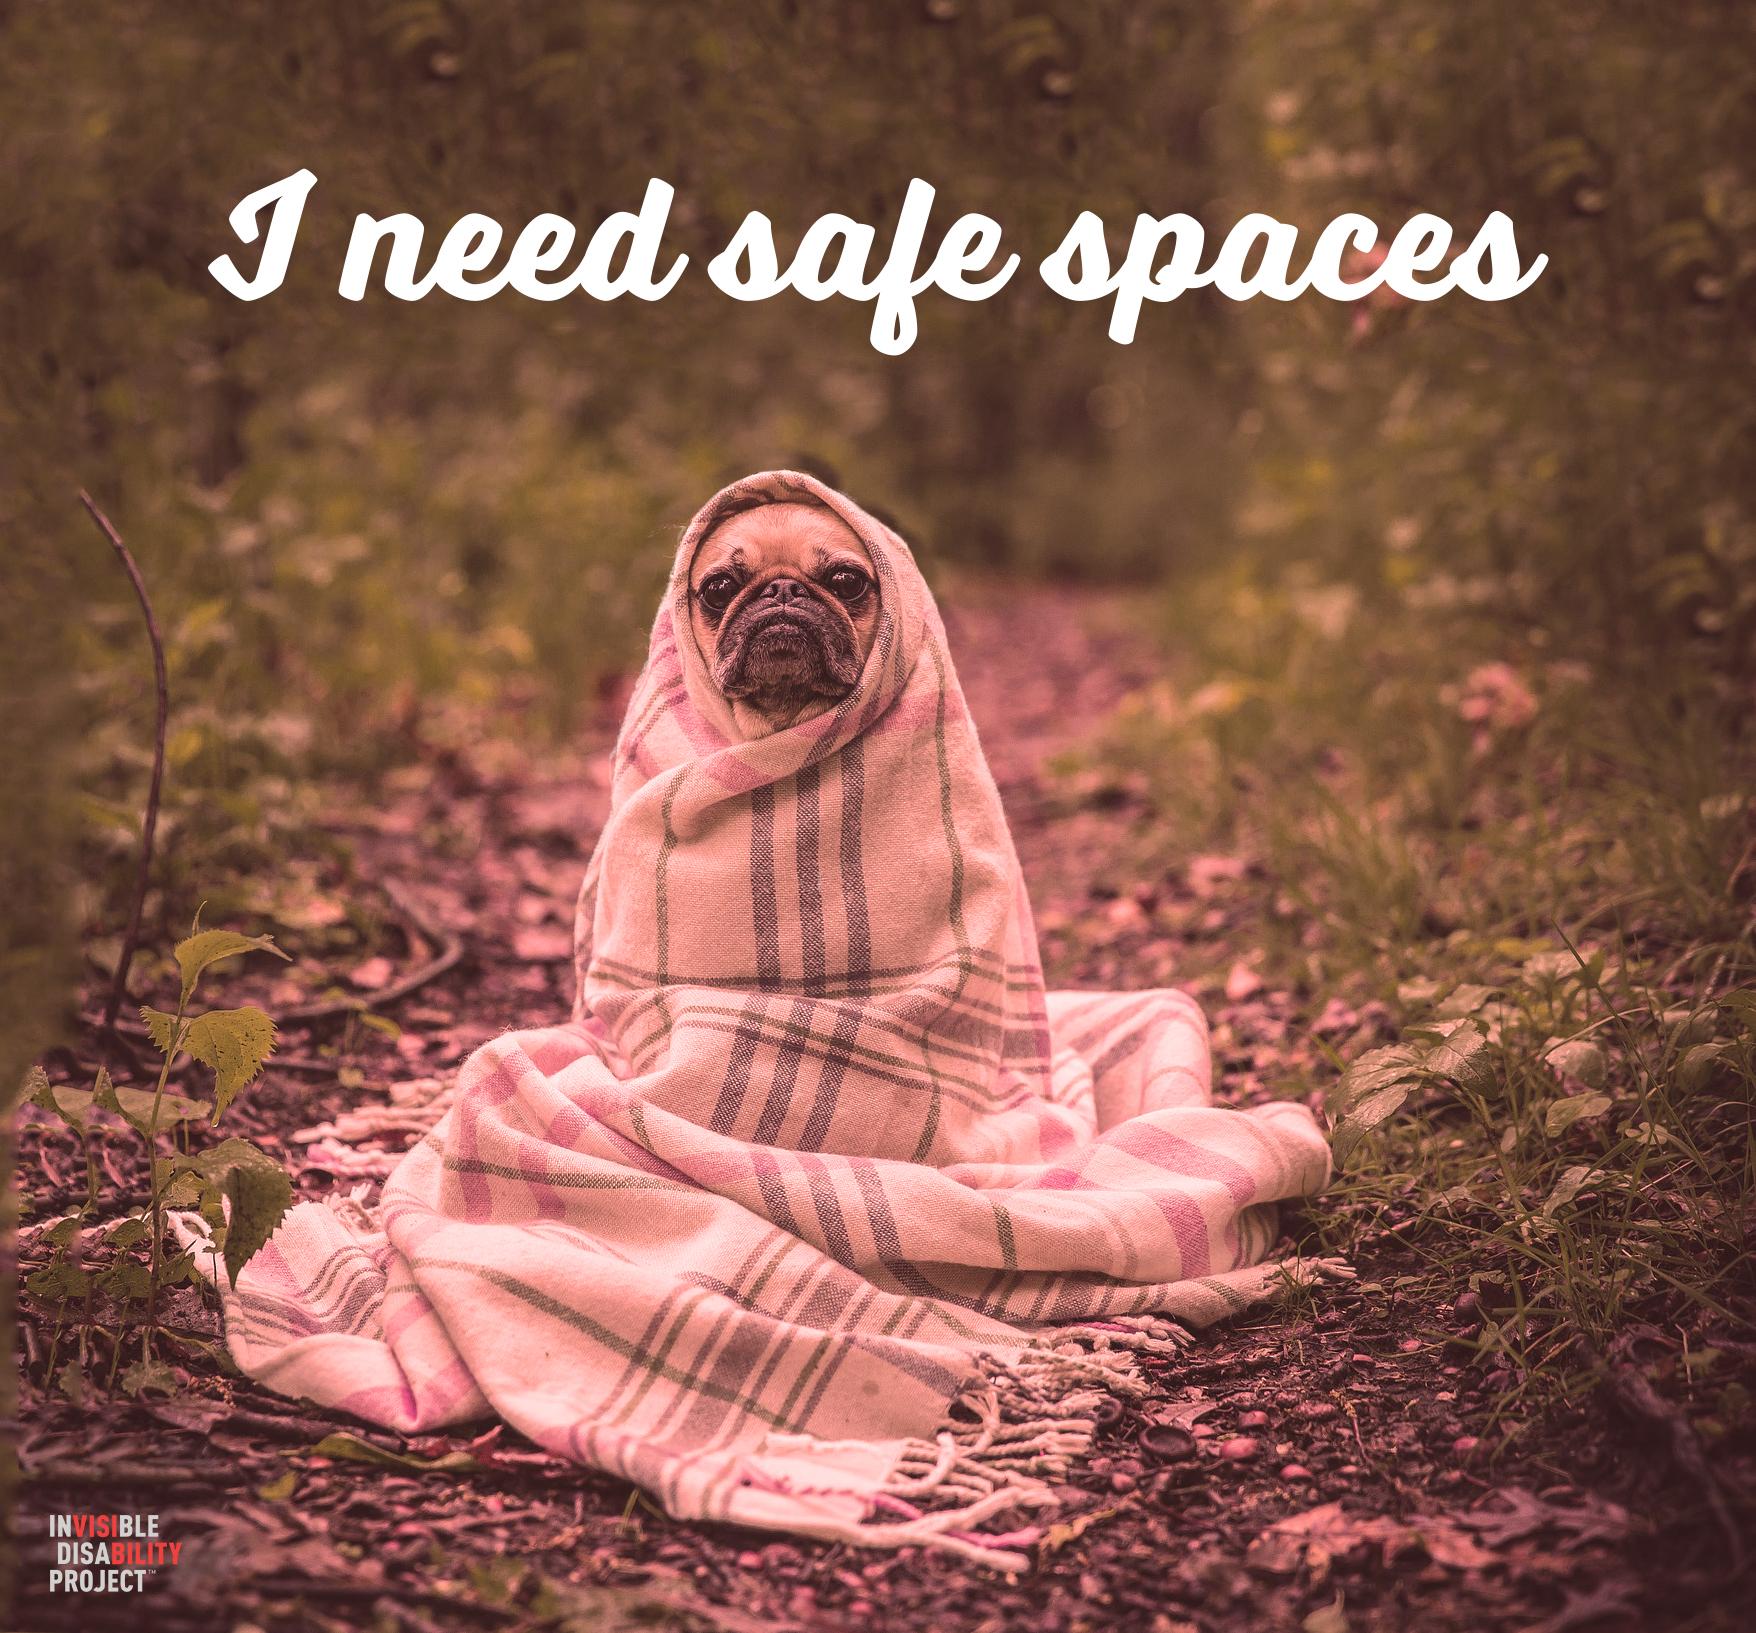 I need safe spaces.